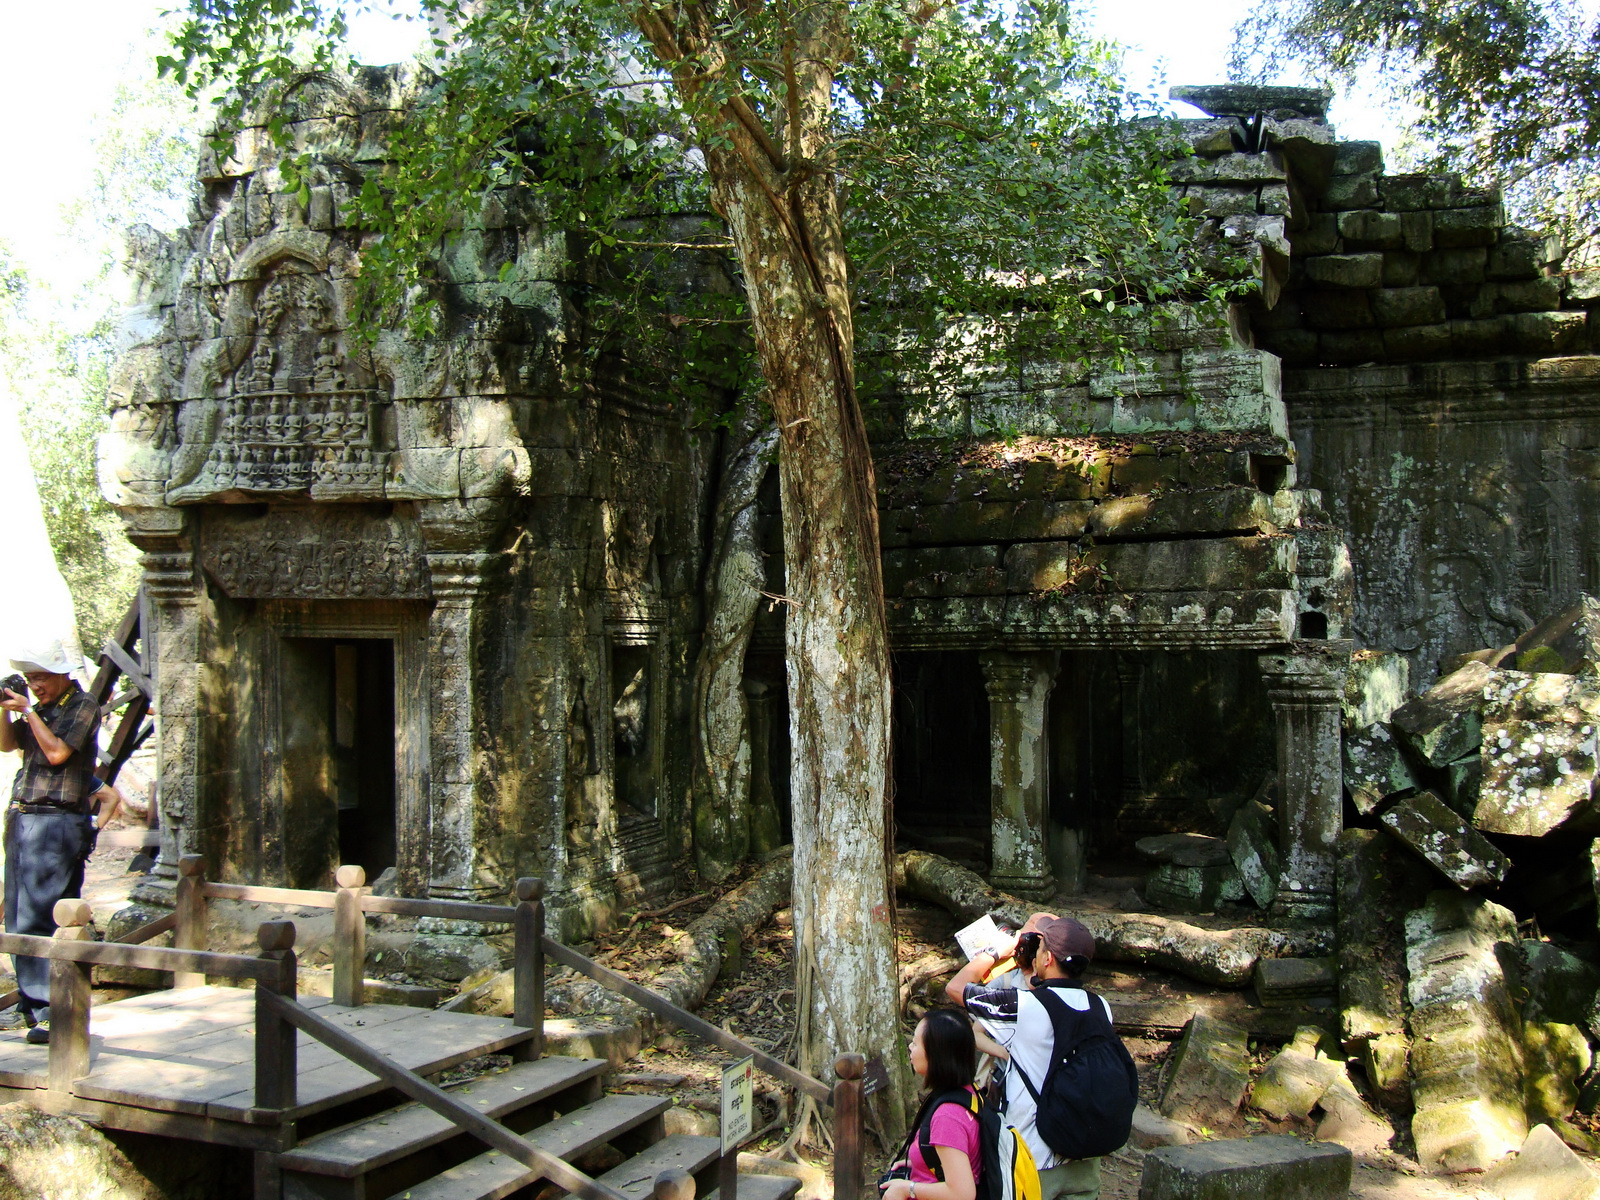 Ta Prohm Temple Rajavihara Tomb Raider third enclosure area 13